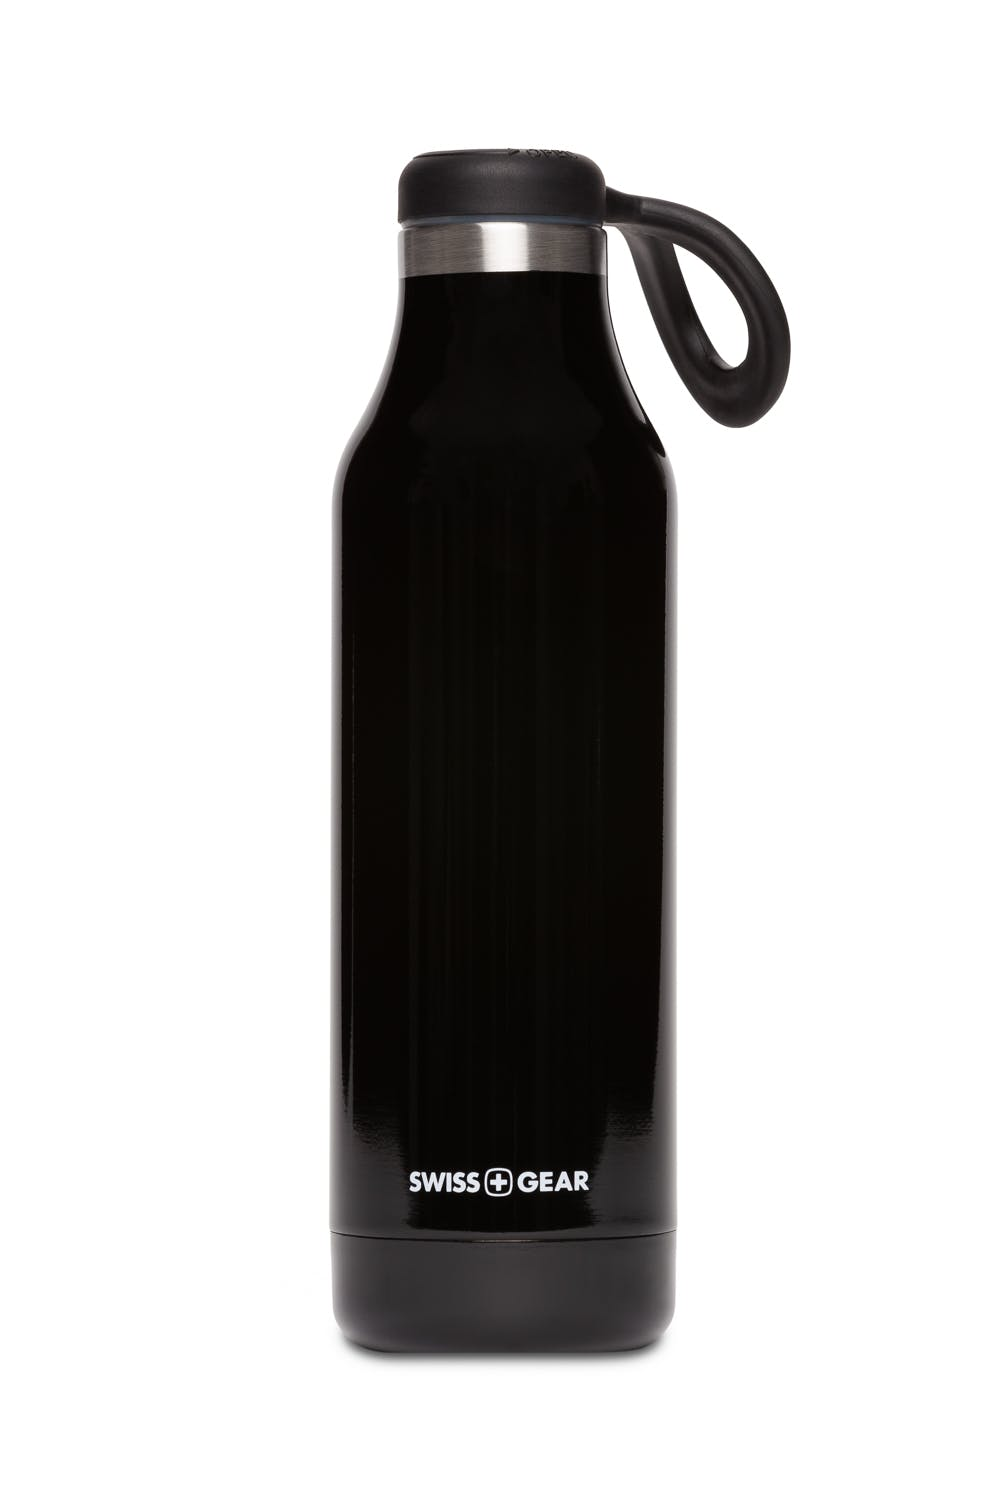 Swissgear 18 oz Stainless Steel Insulated Bottle